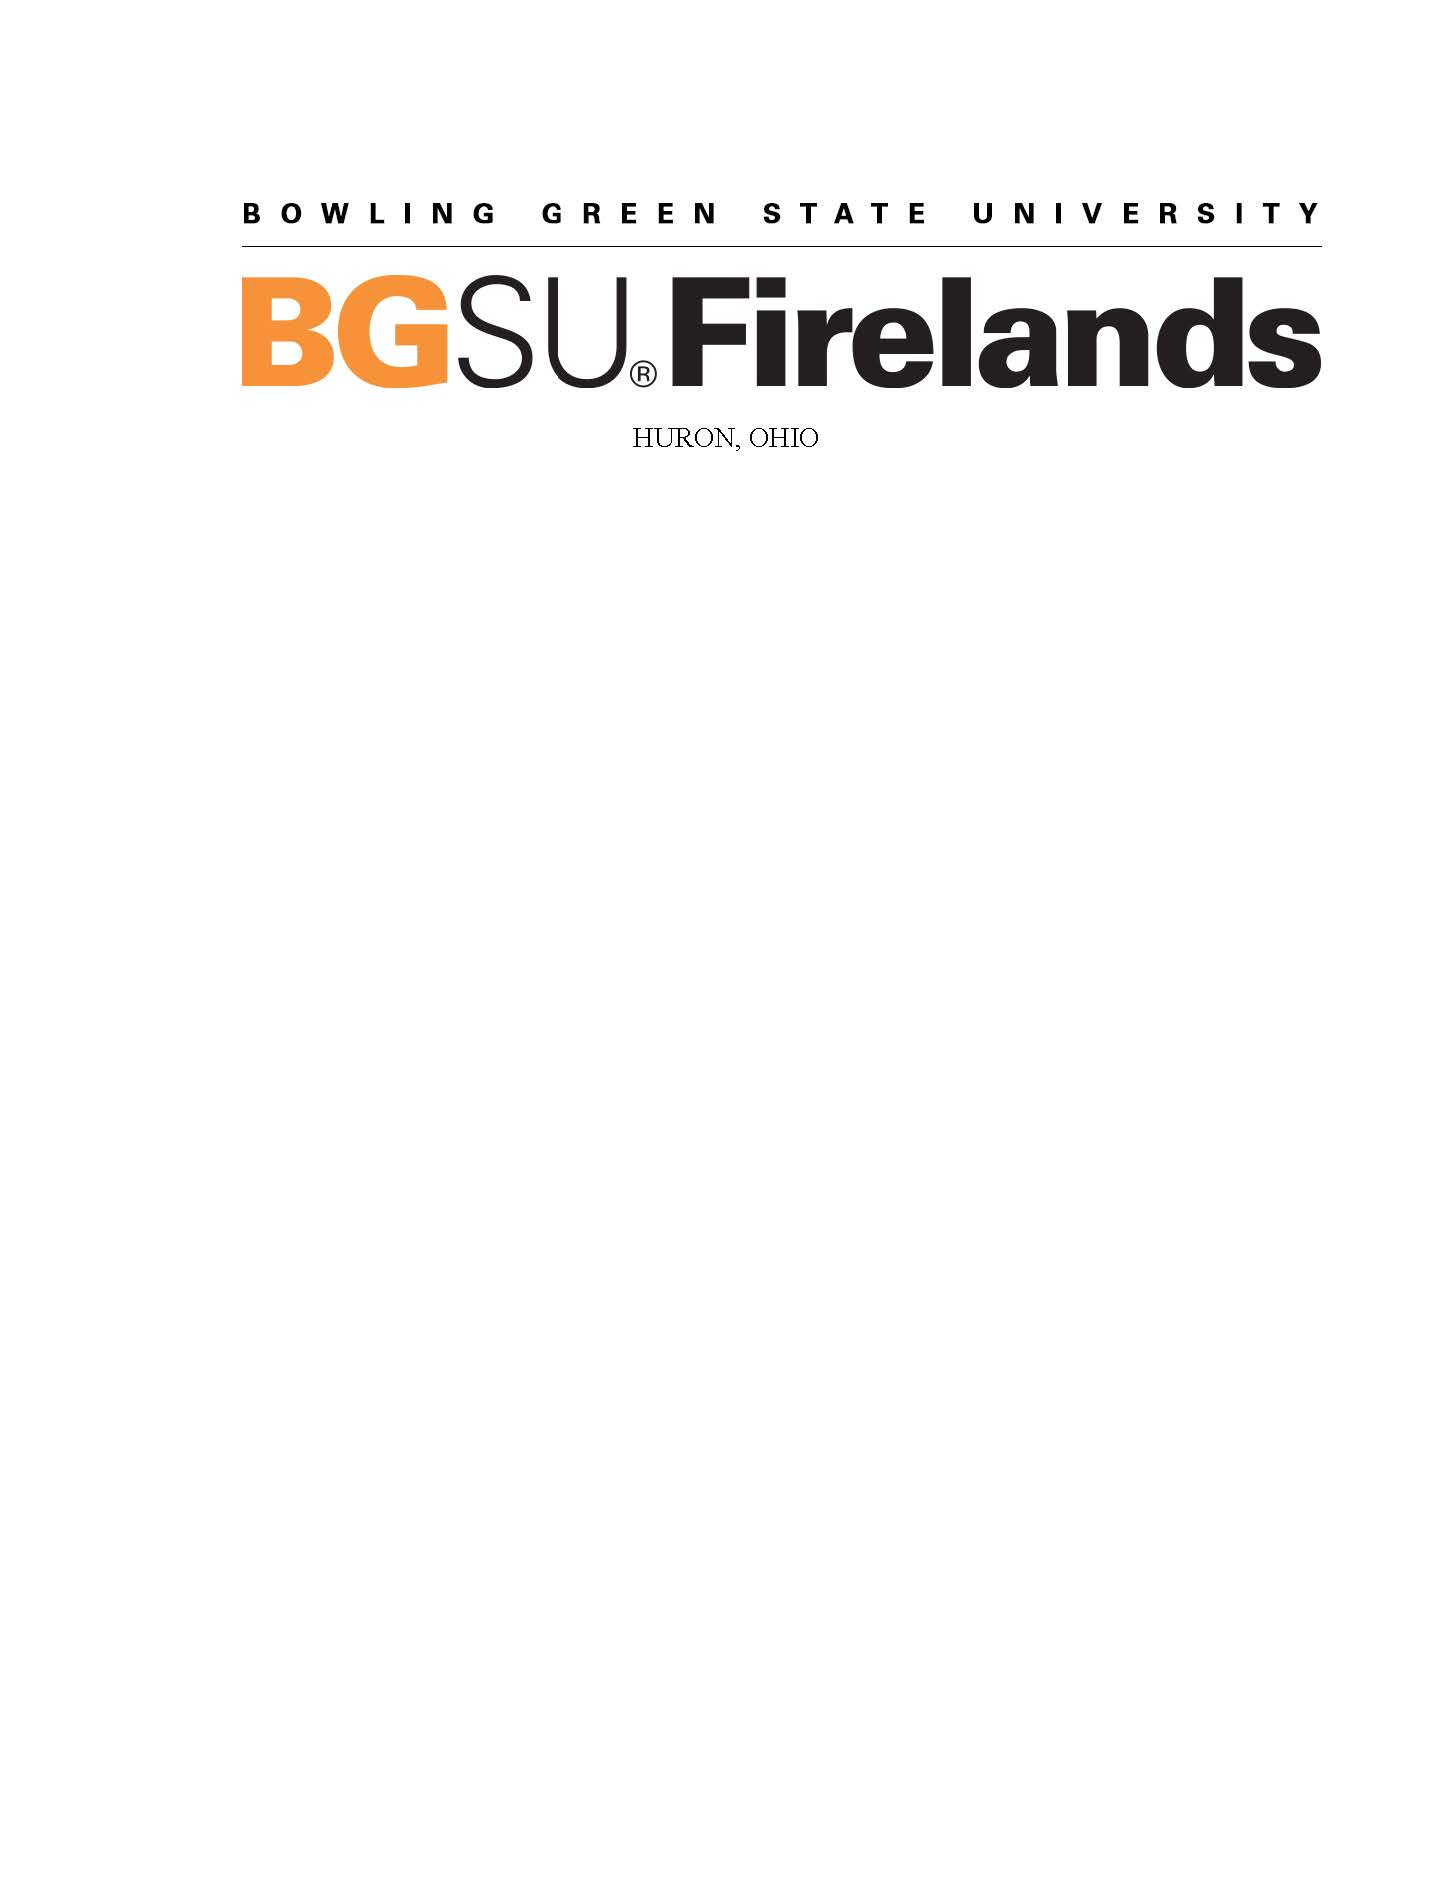 Bowling Green State University - Firelands logo